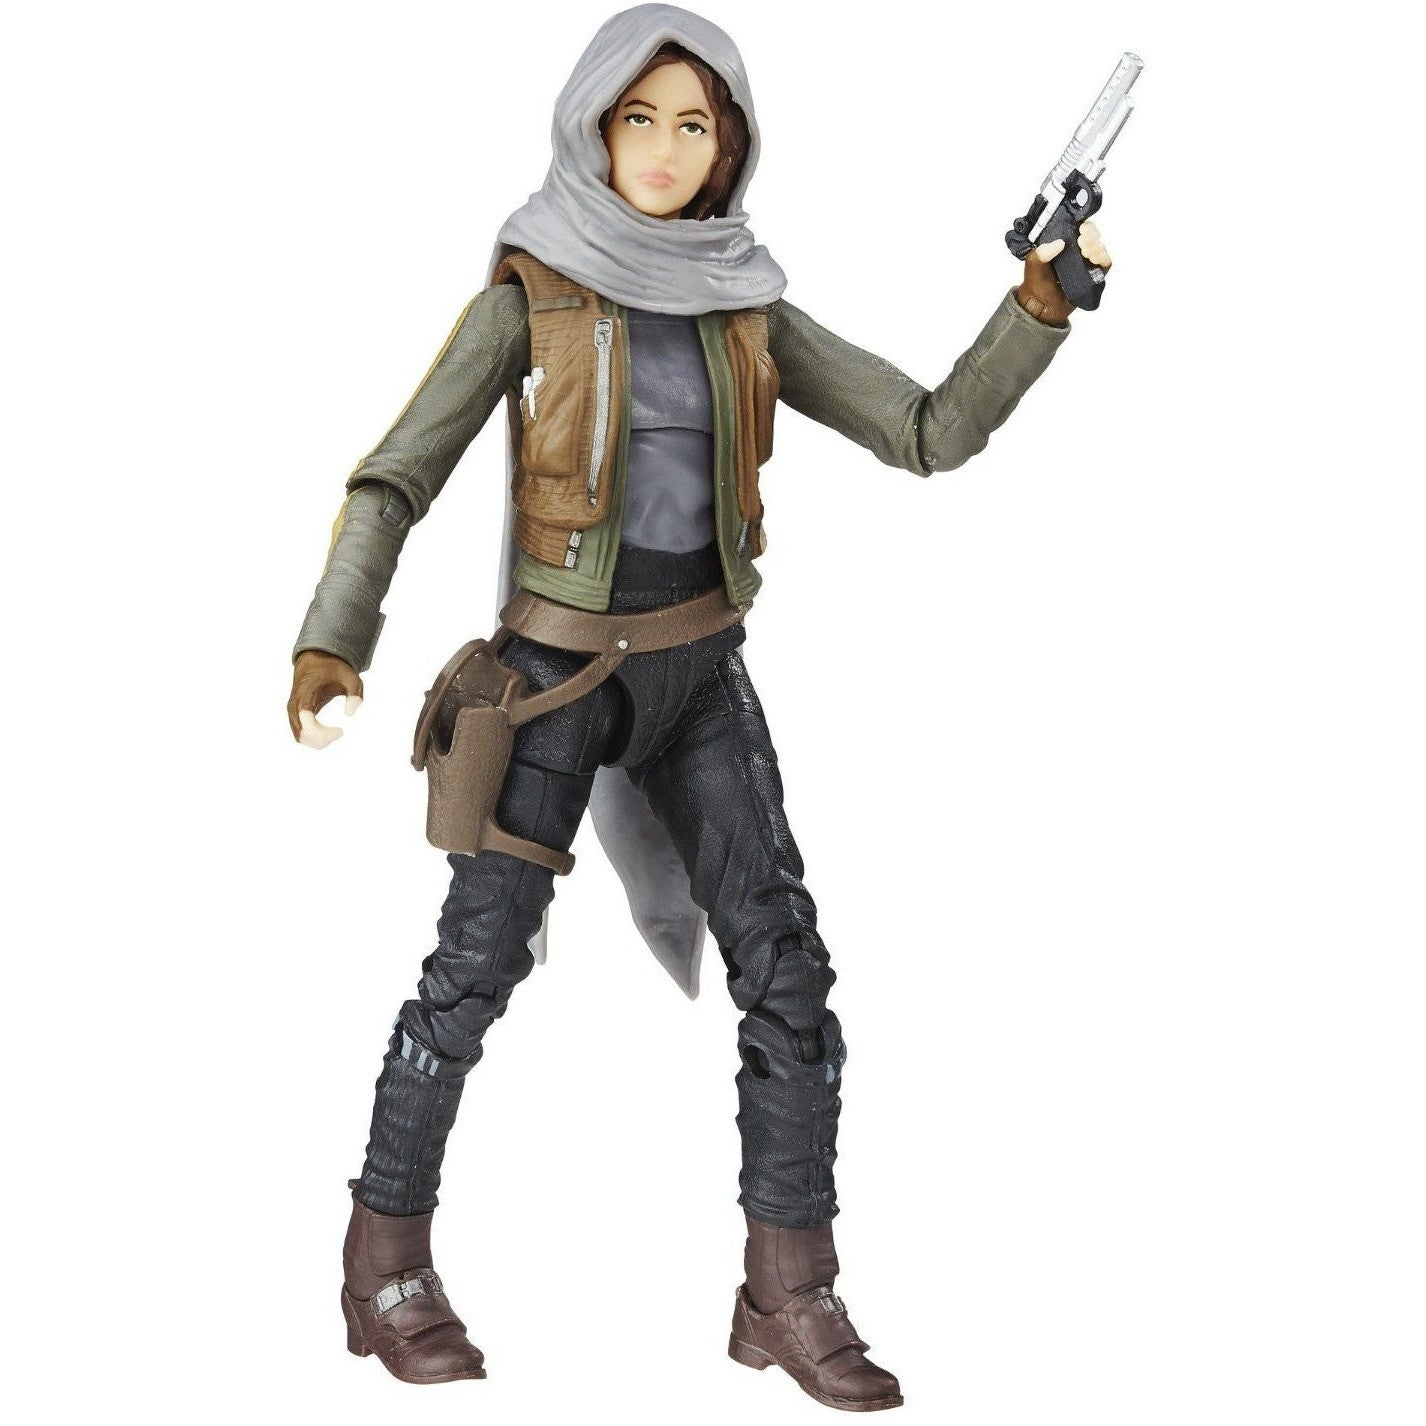 Star Wars Black Series Jyn Erso Action Figure Uncanny!